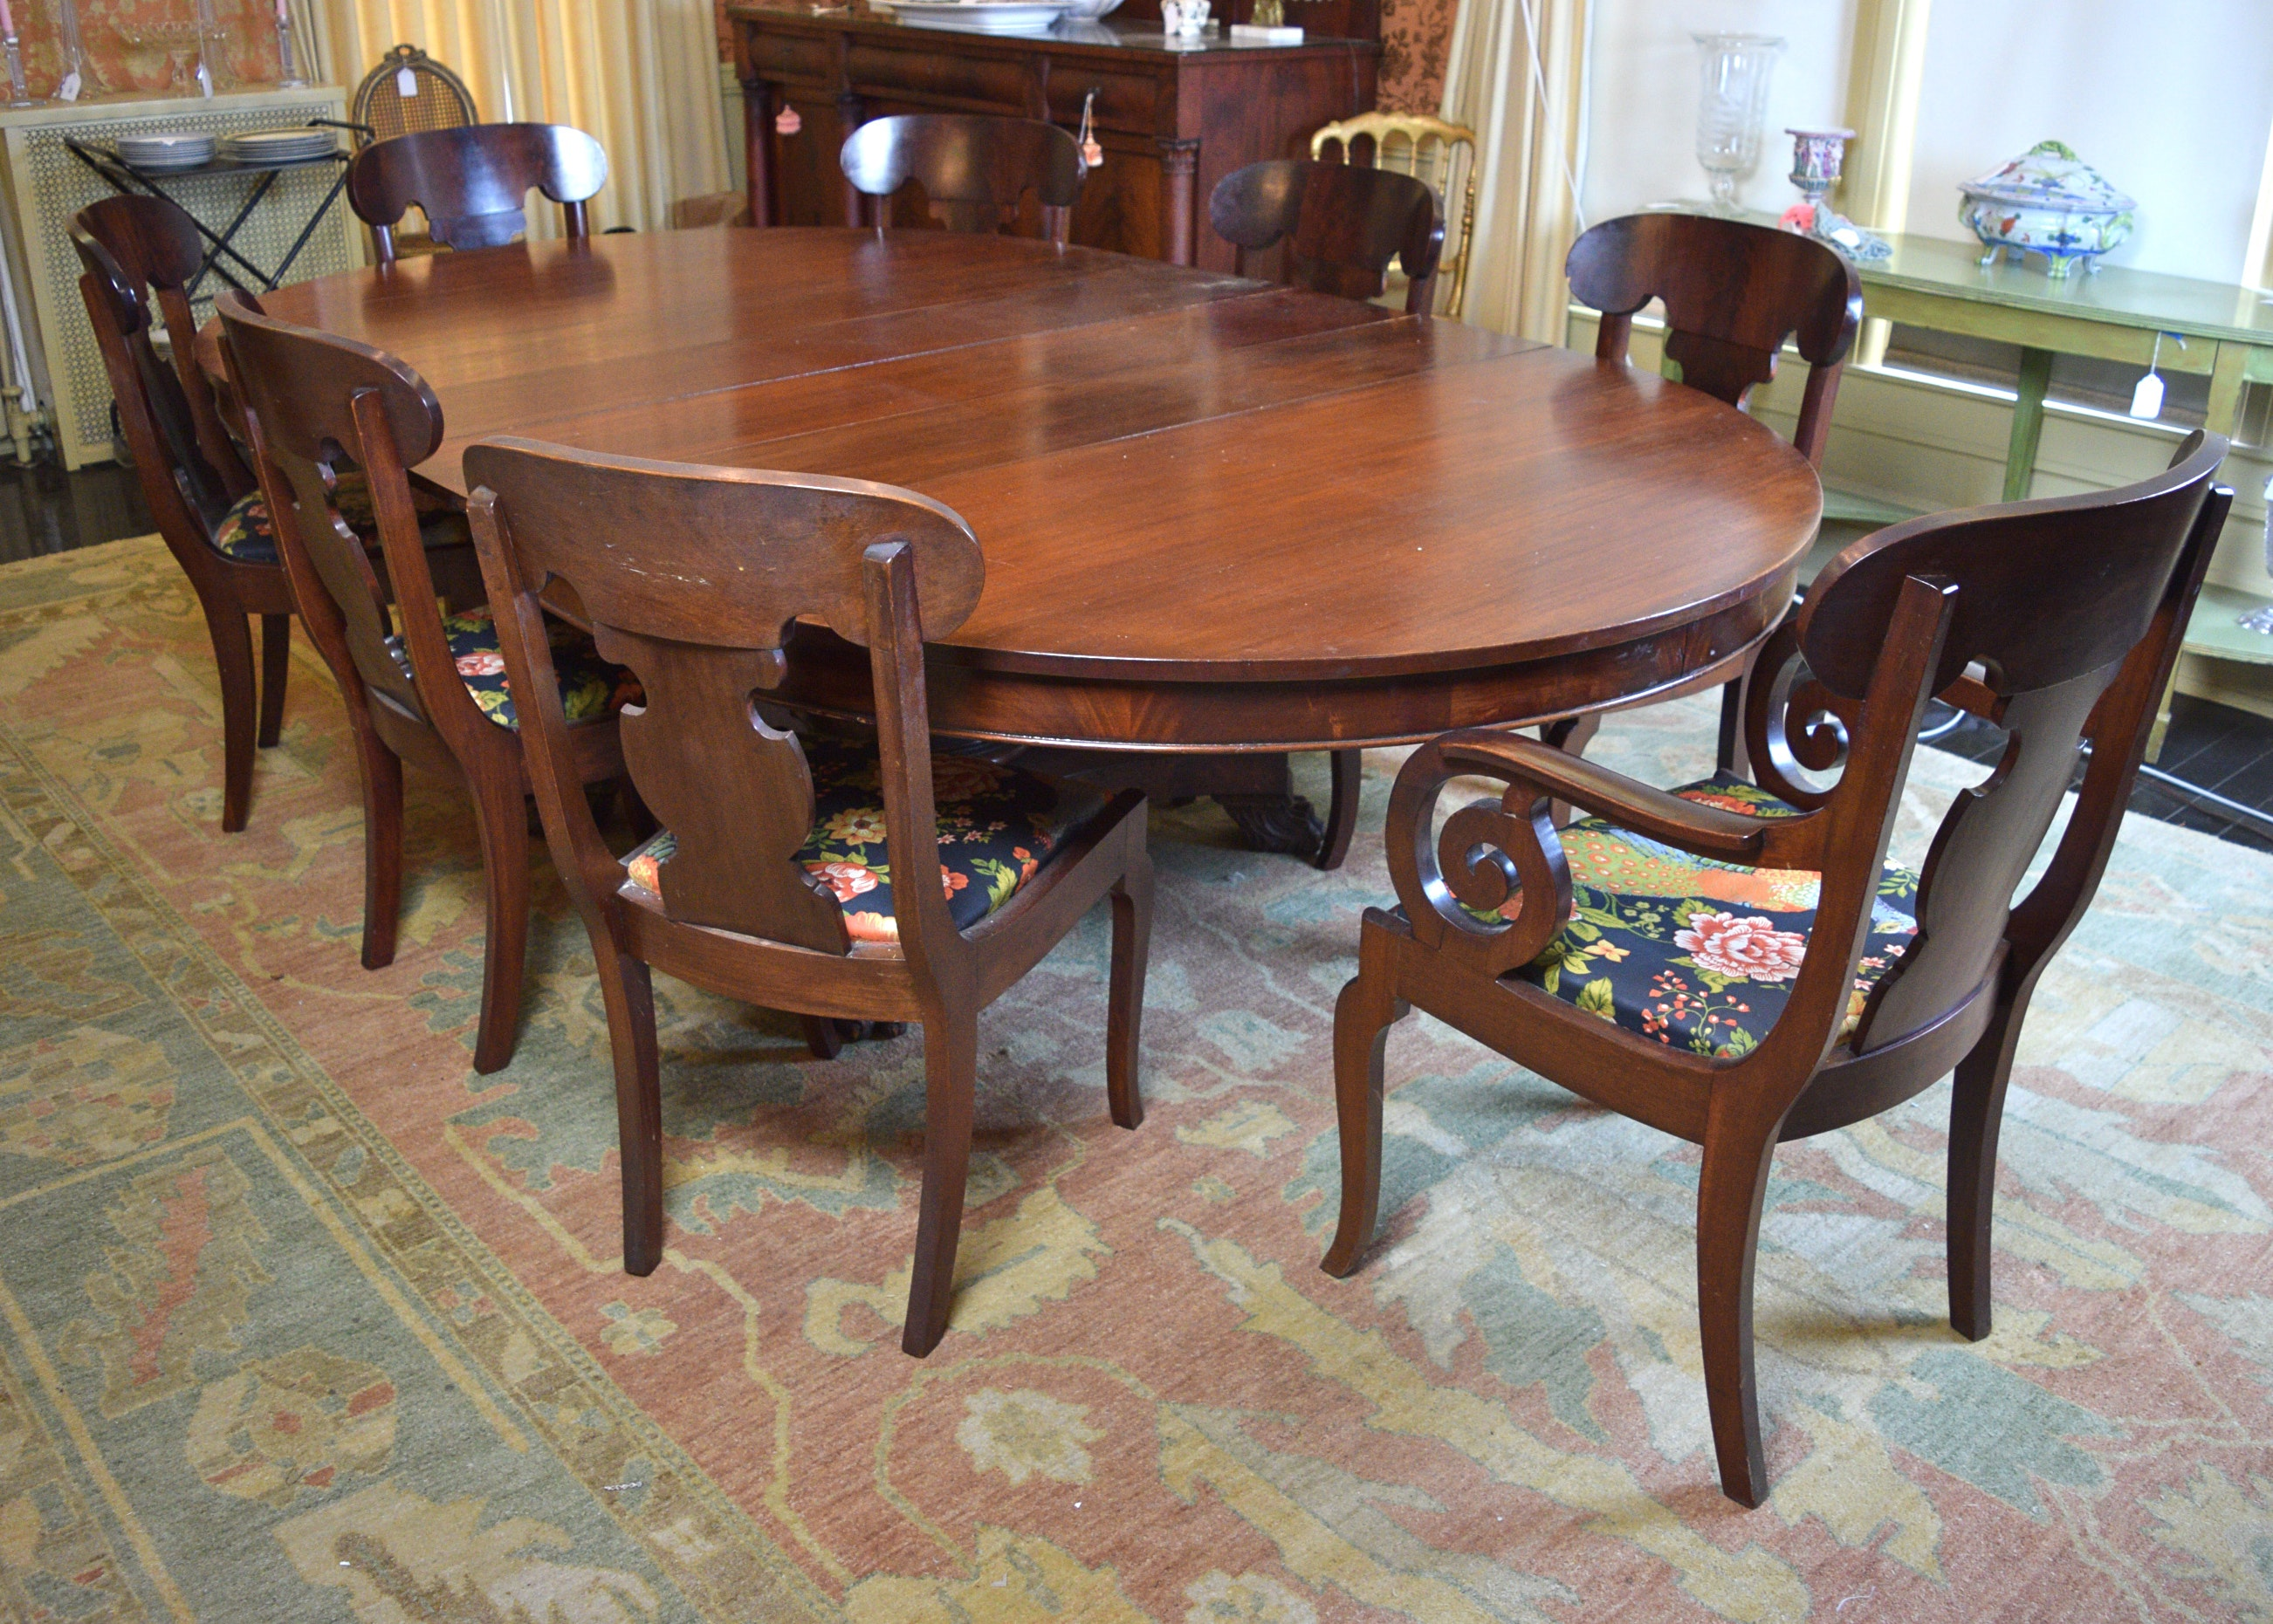 Online Furniture Auctions Vintage Furniture Auction Antique American Empire  Furniture American Empire Oval Dining Table And Chairs